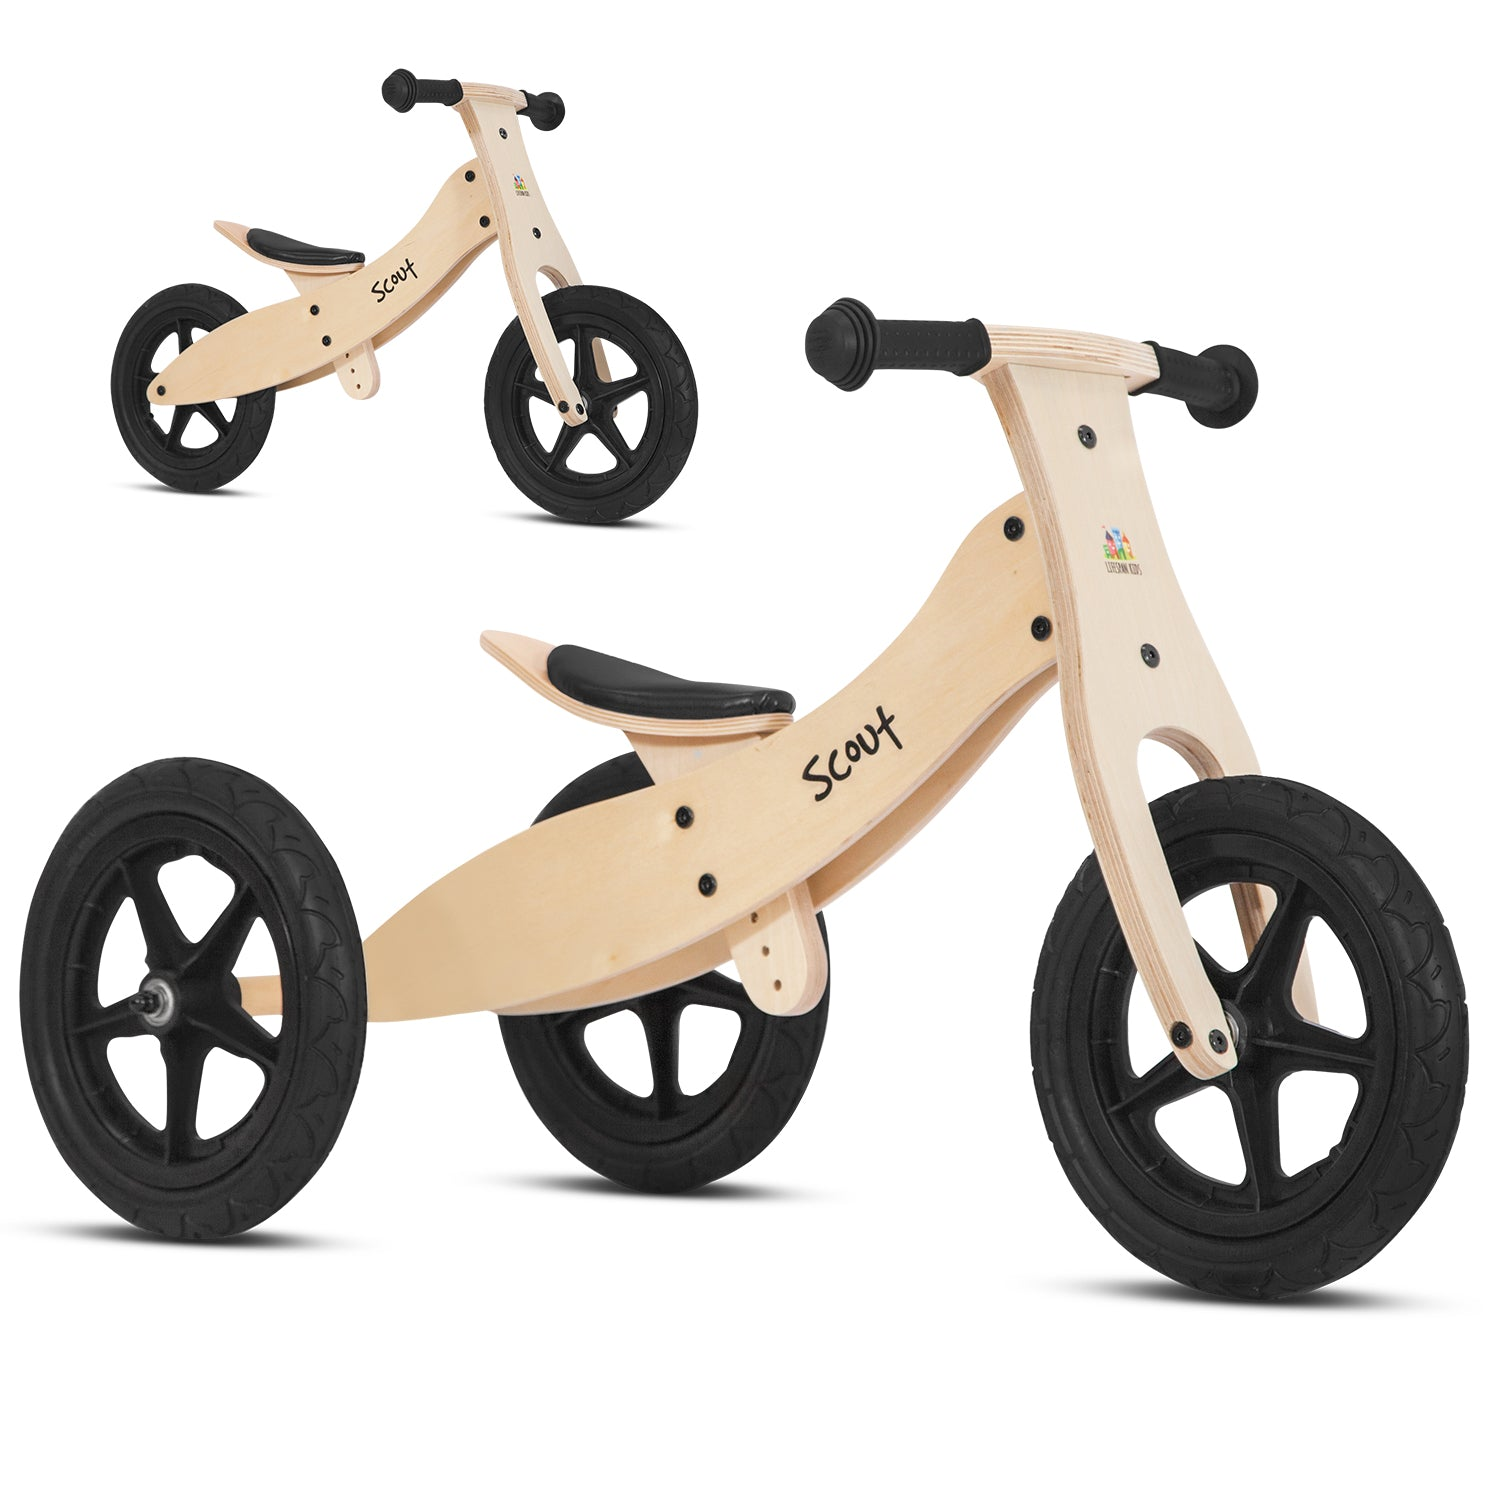 Lifespan Kids Scout 2-in-1 Balance Bike & Trike